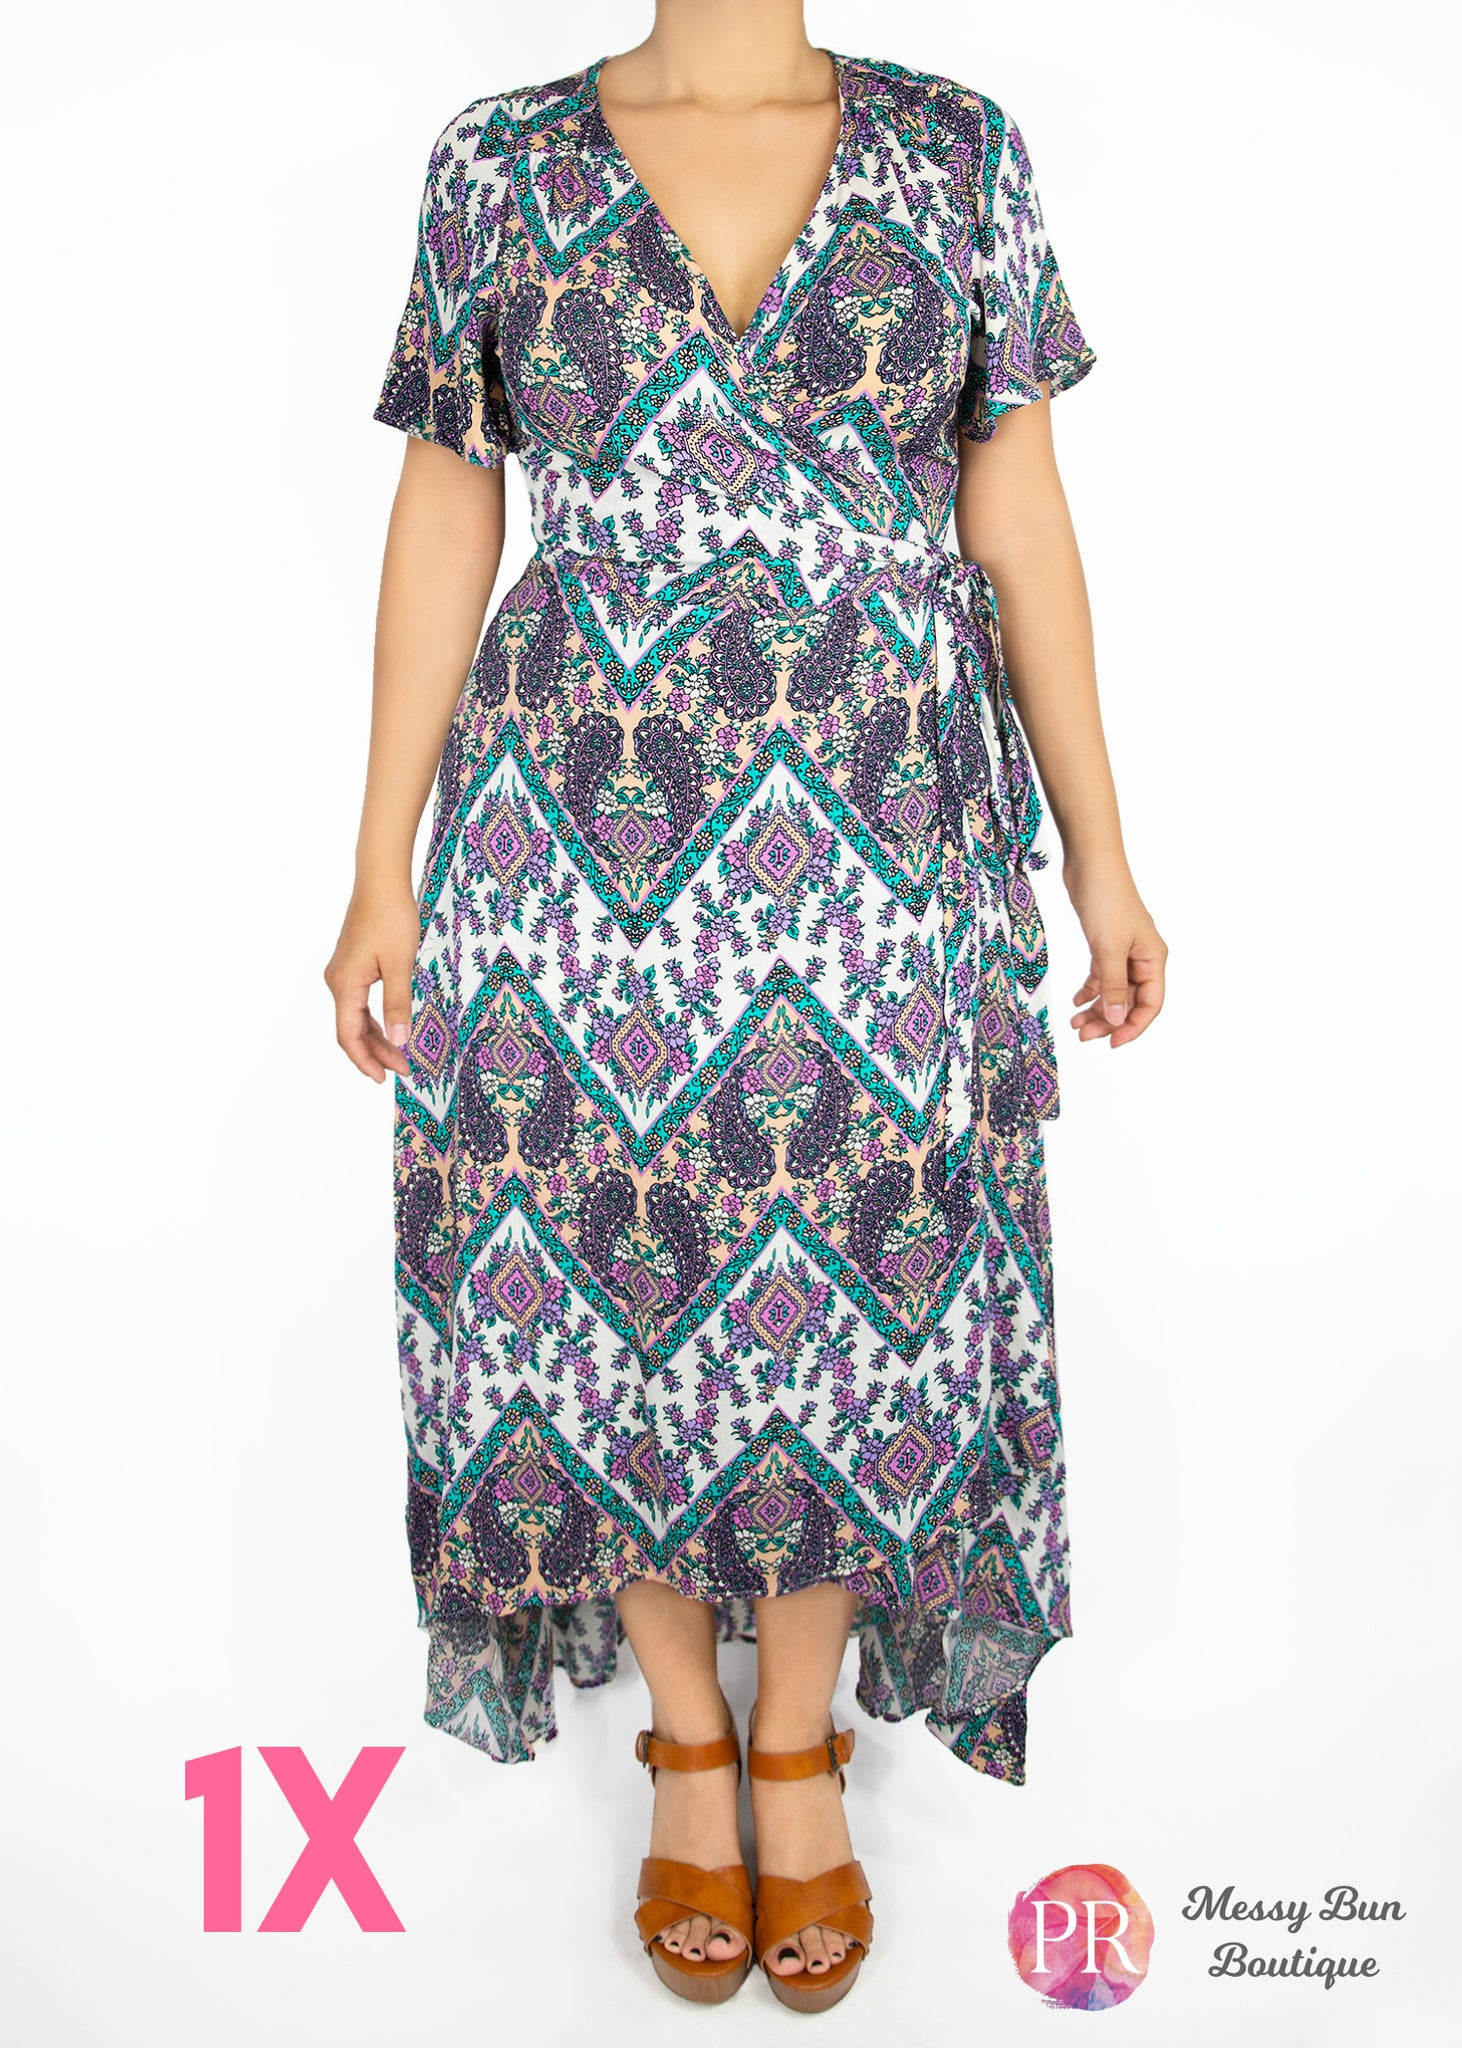 1X Purple and Blue Patterned Paisley Raye Primrose Dress